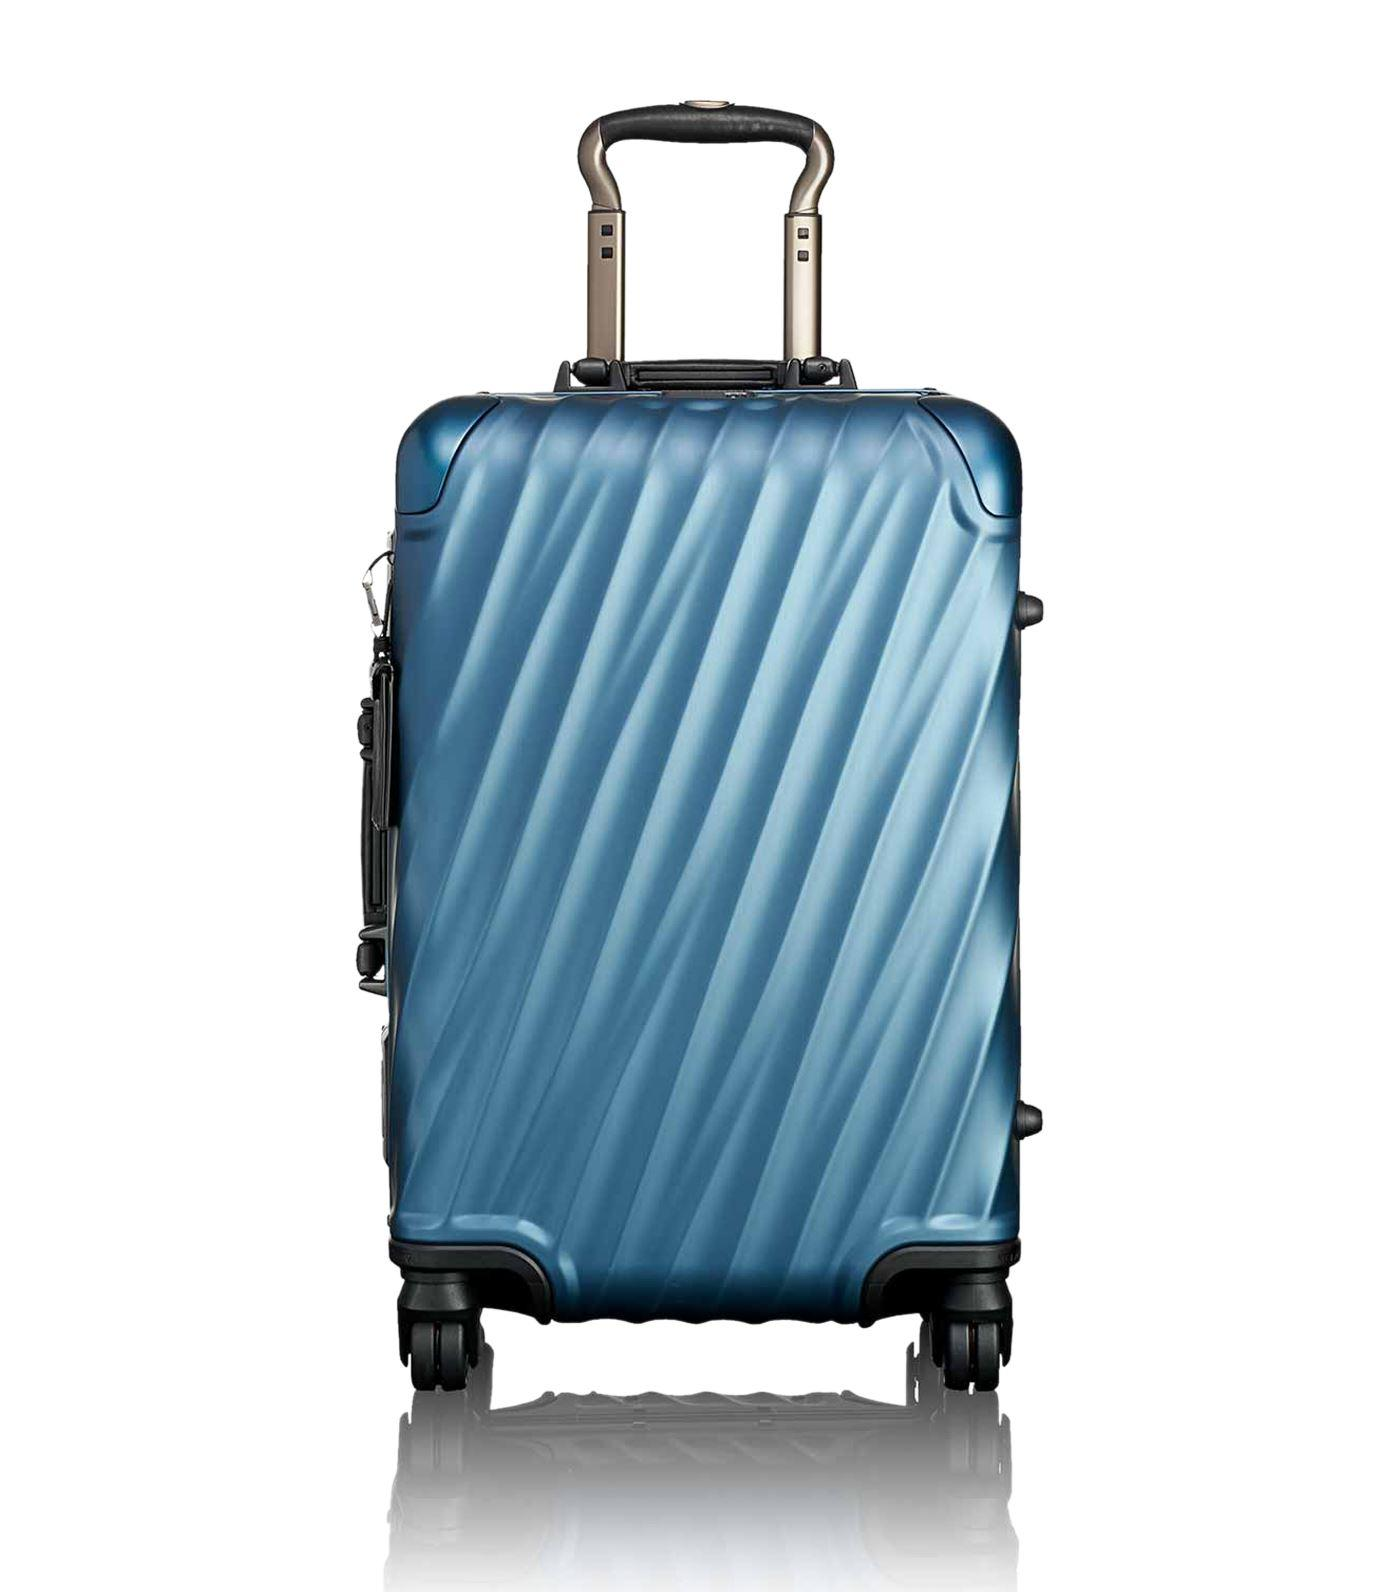 Tumi 19 Degree Extended Trip Wheeled Aluminum Packing Case - Blue